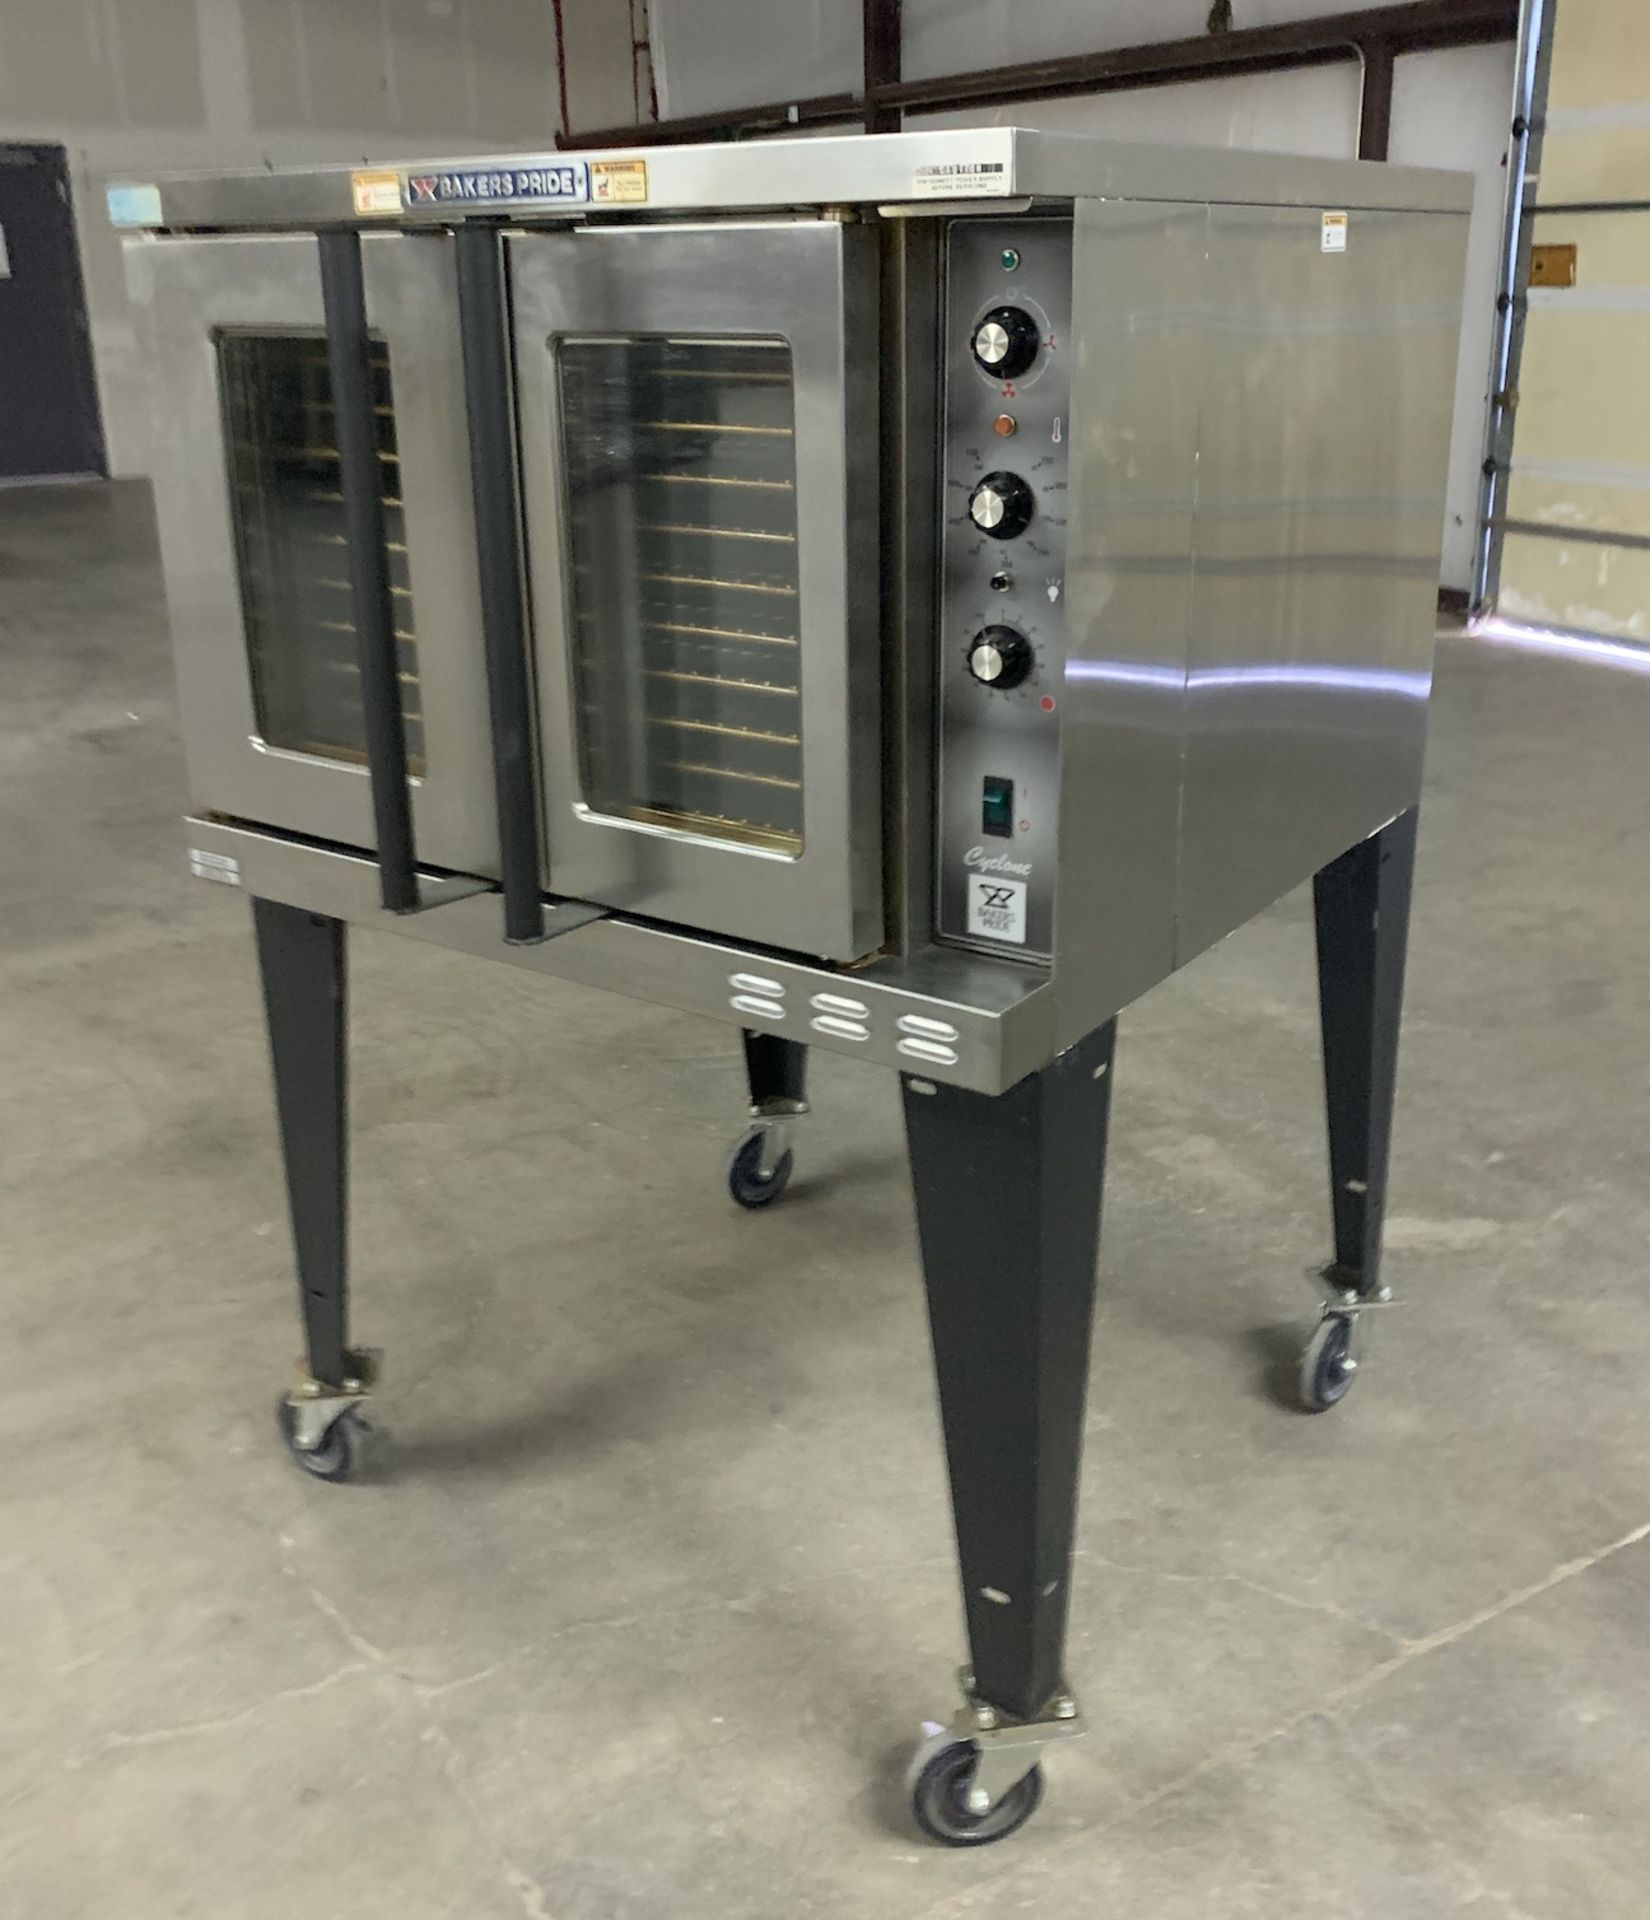 Used Bakers Pride Cyclone Series Single Deck Full Size Electric Decarb Oven. Model BCO-E1w/ 39 trays - Image 5 of 8